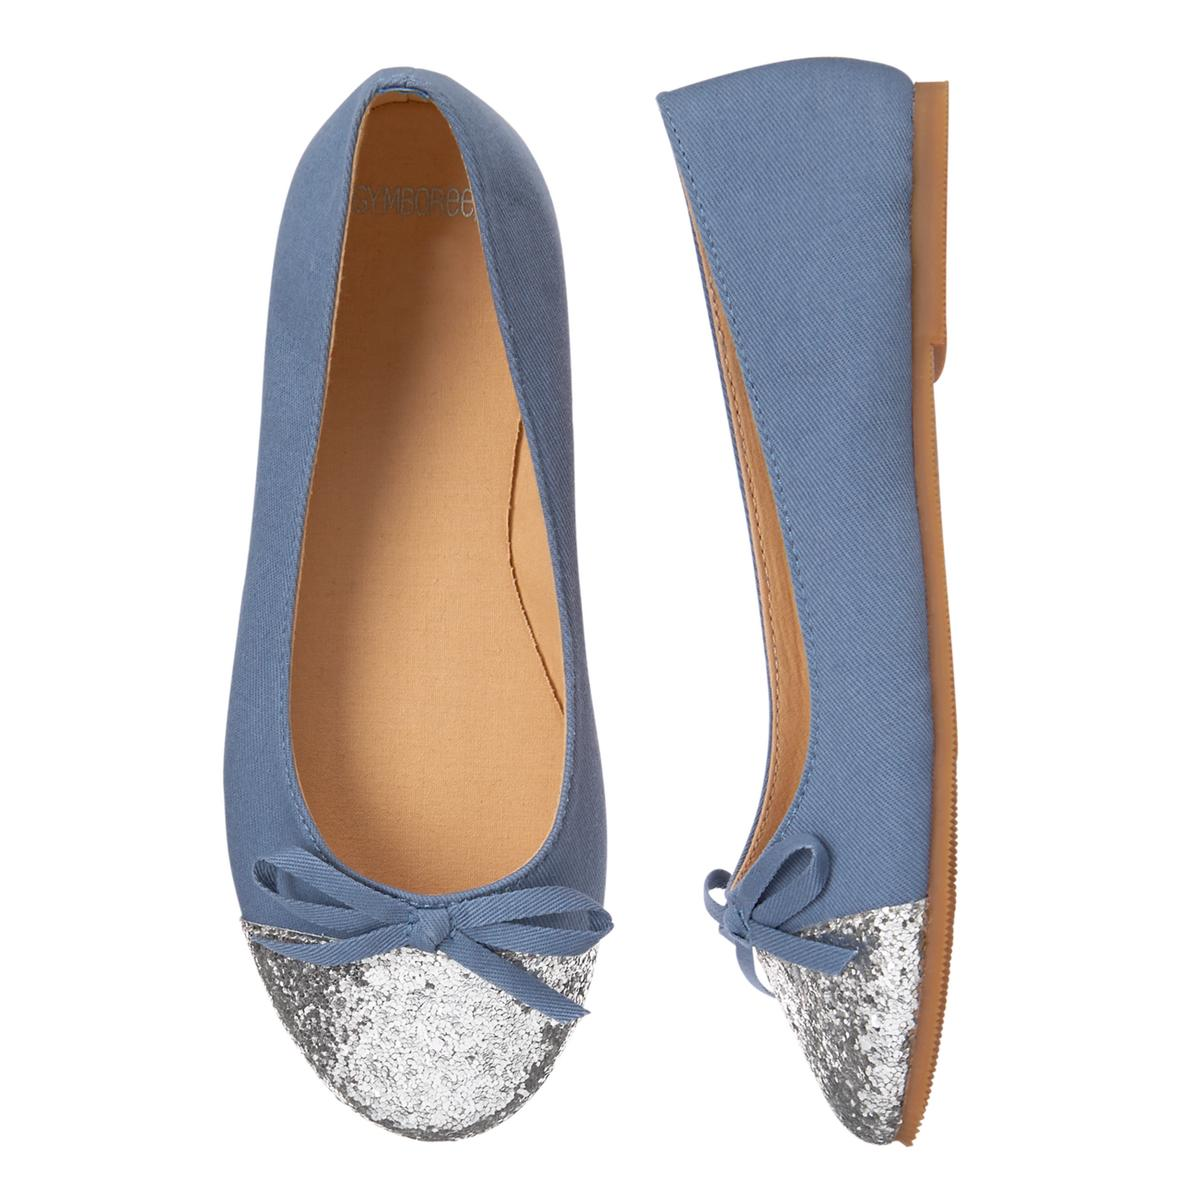 Girls Glitter Toe Flats: Sale $6.99, Regular $32.95